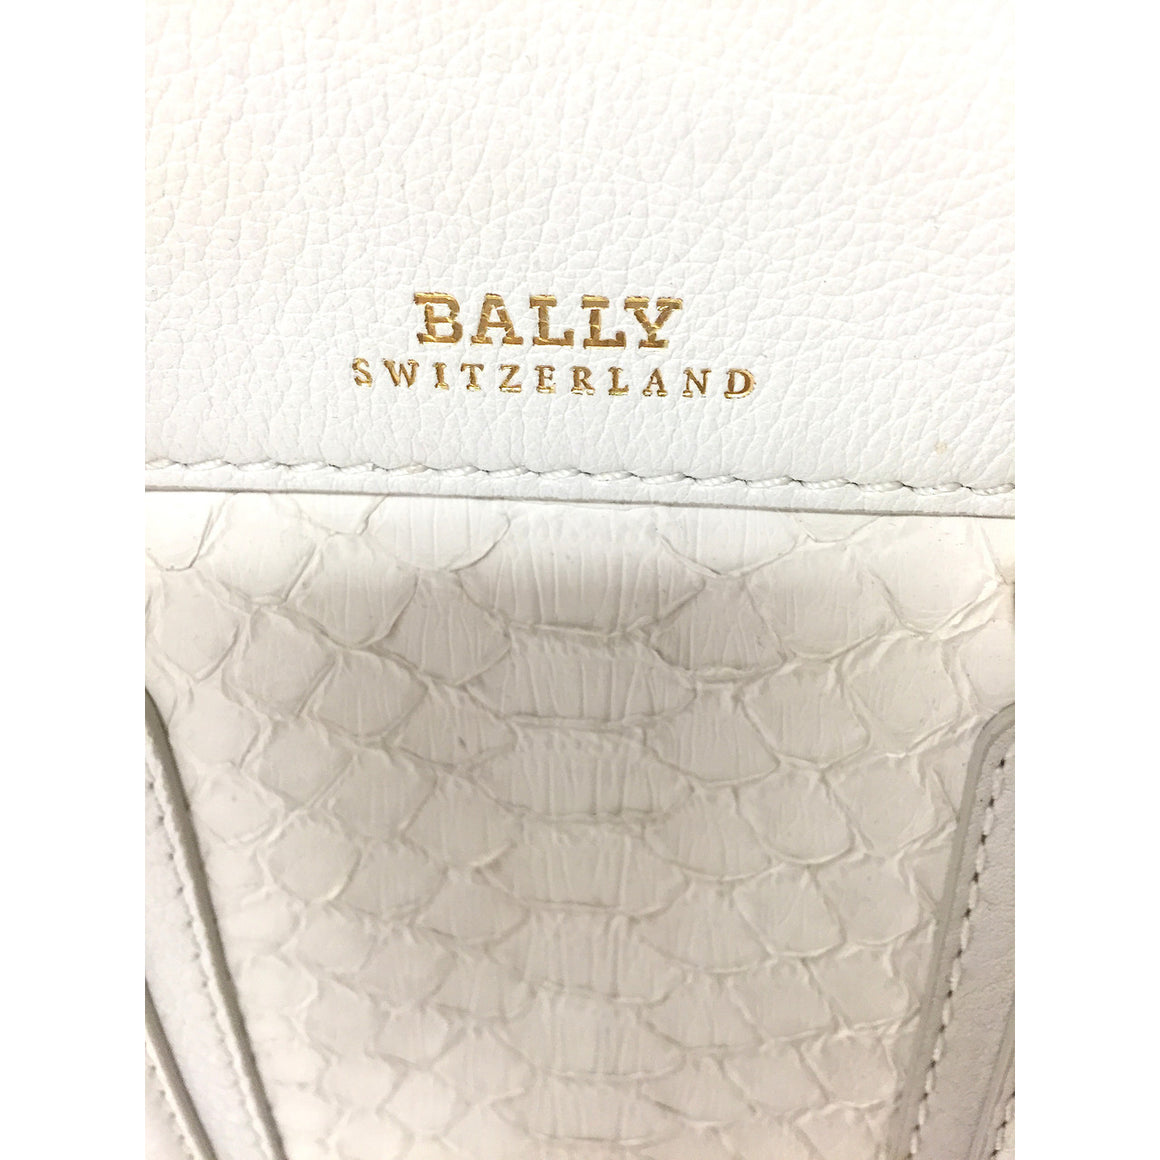 BALLY of SWITZERLAND White Leather & Python Skin 'DELFINA GRANDE' Hand Bag Tote